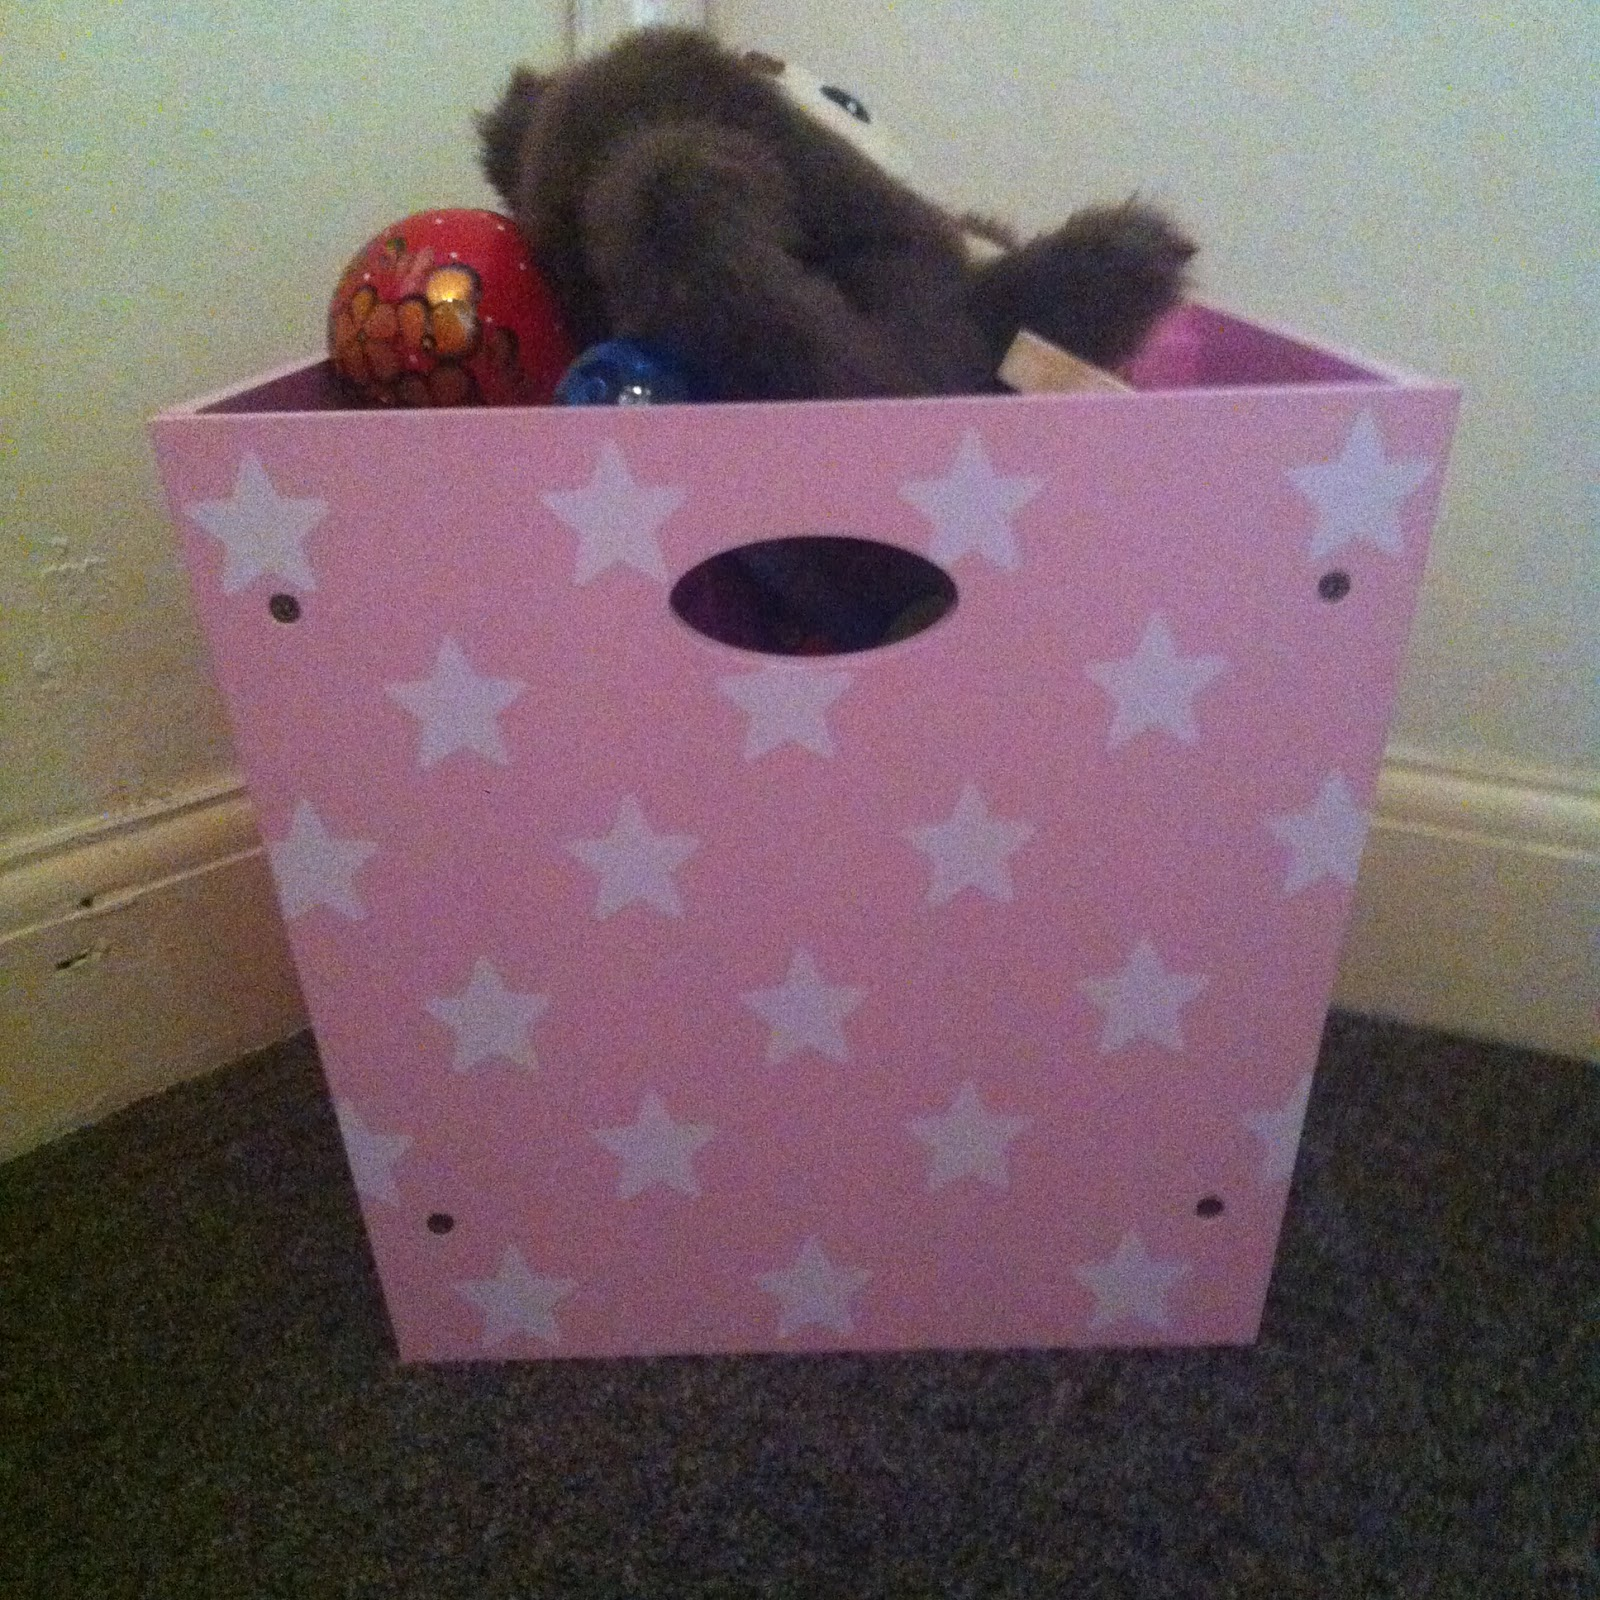 Carnival Toy Box Pink: My Little L: Review: Kid's Concept Pink Wooden Toy Box